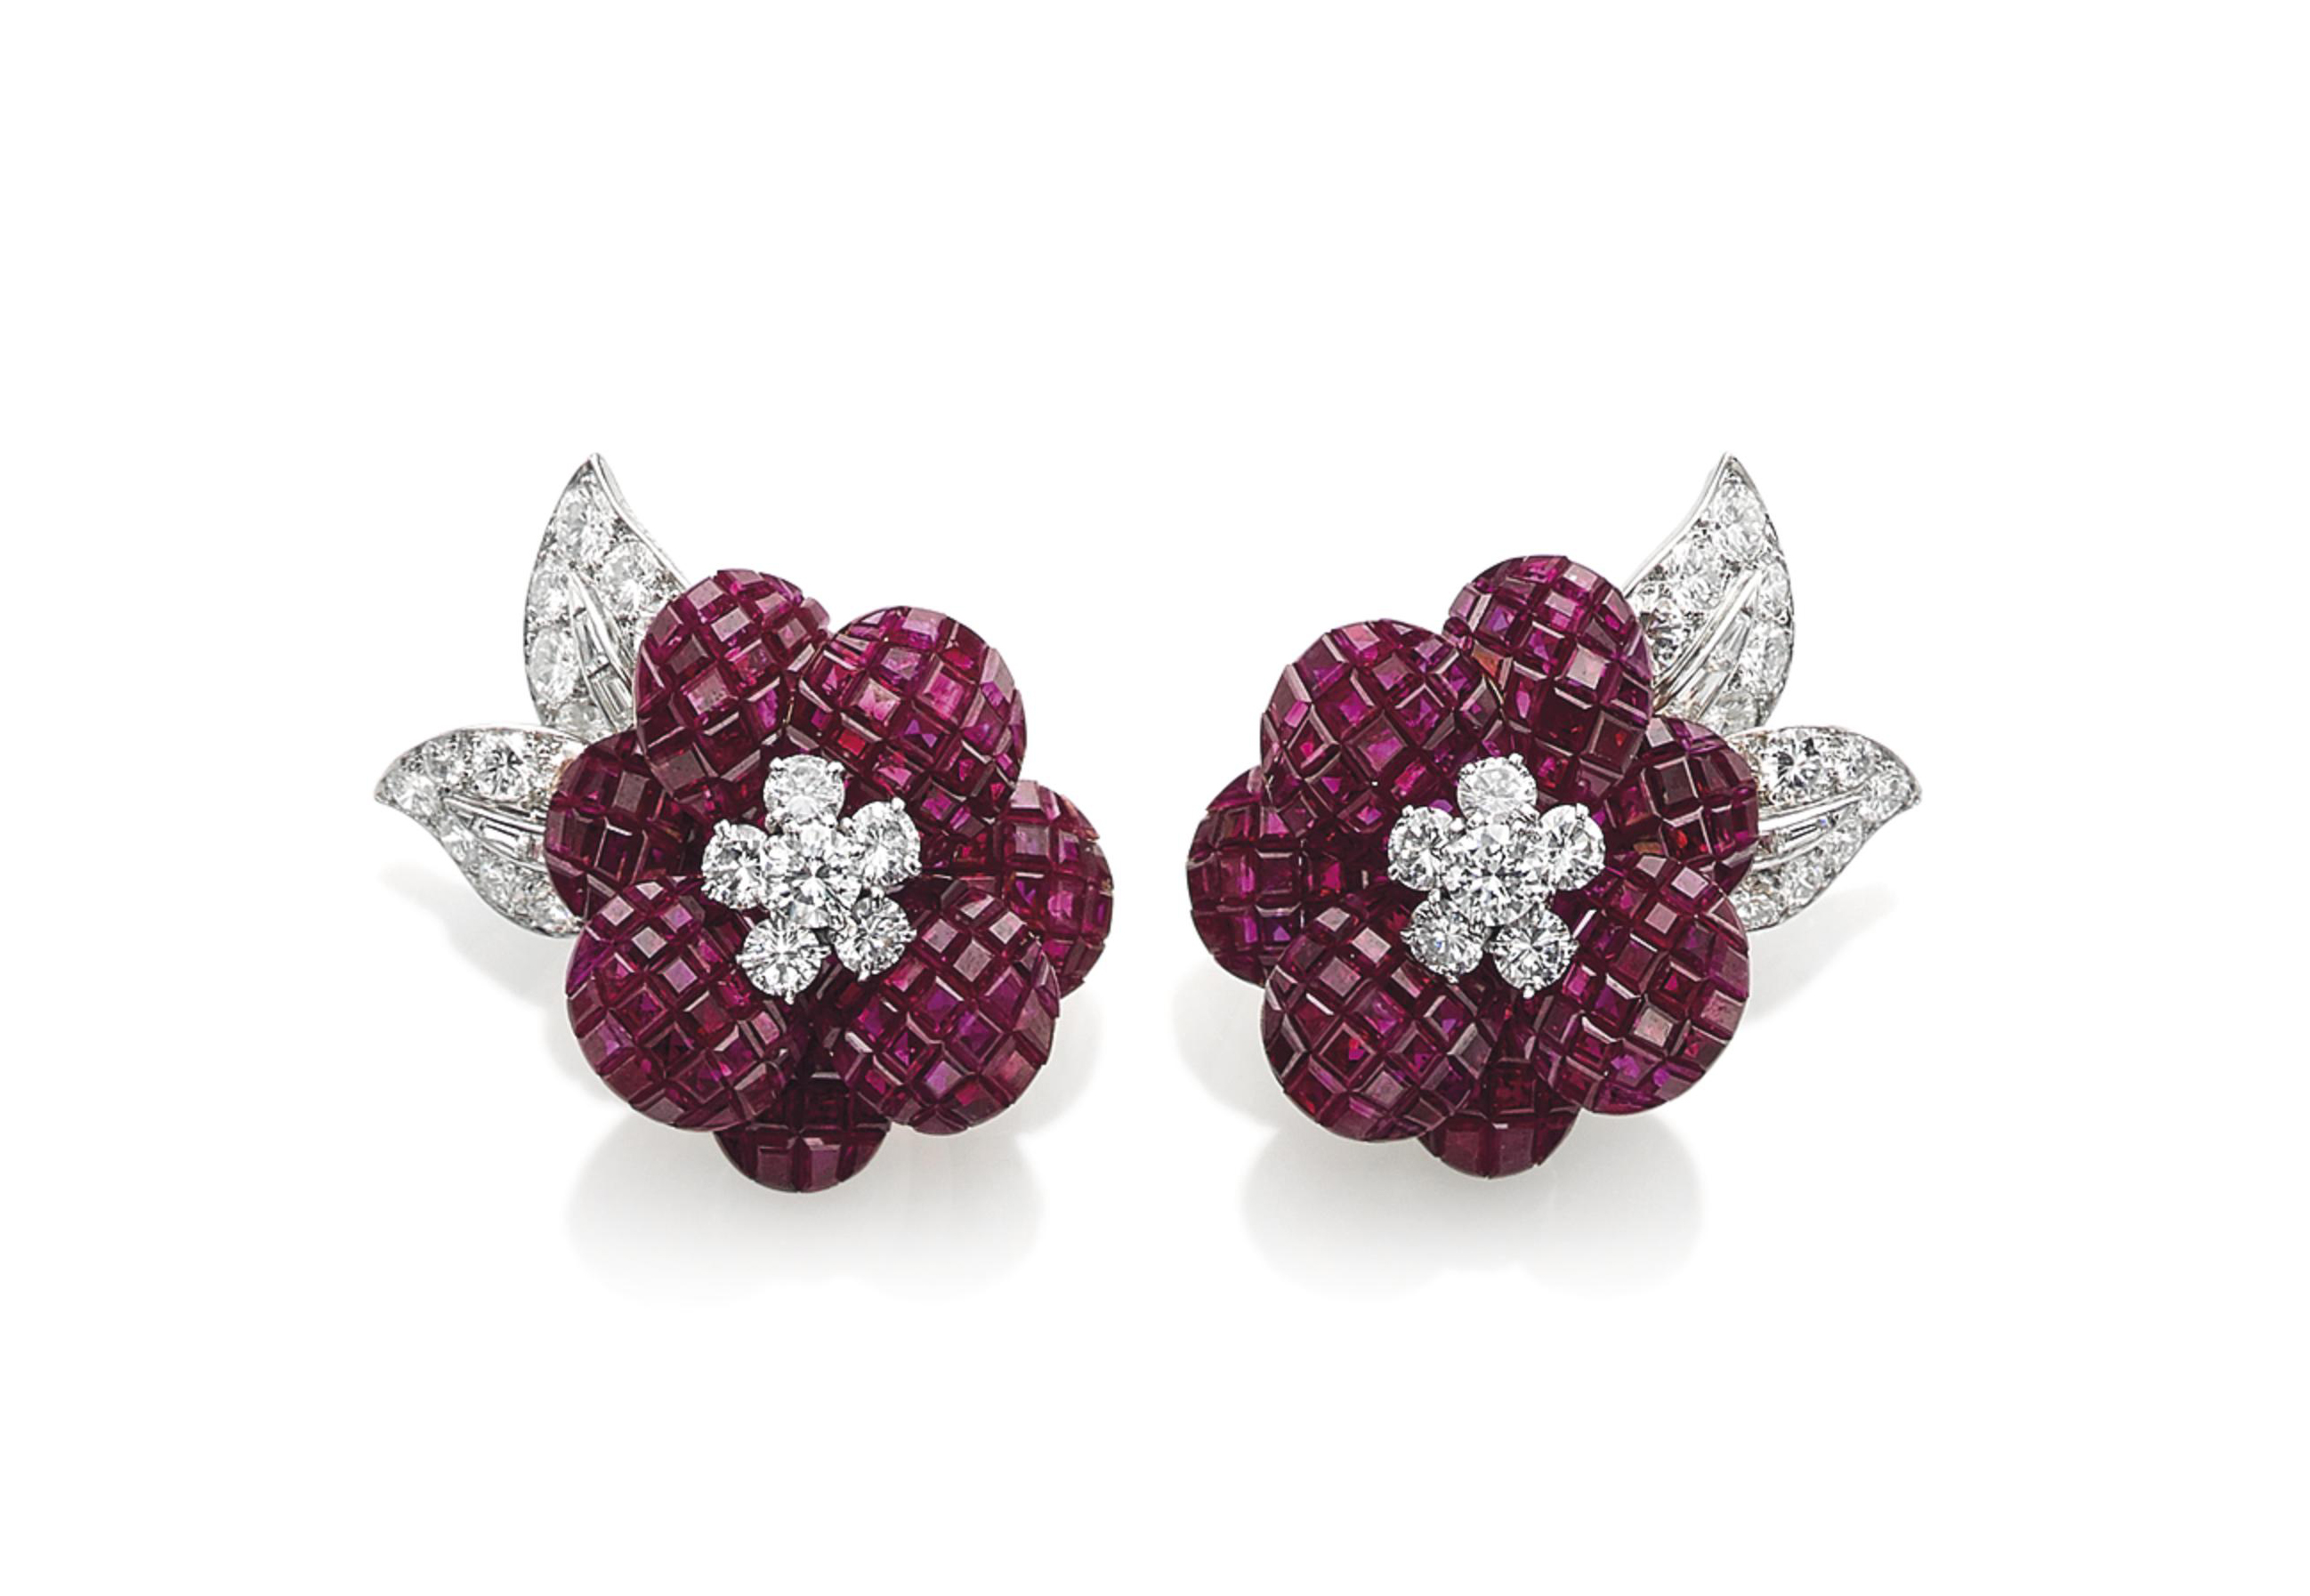 A PAIR OF 'MYSTERY-SET' RUBY AND DIAMOND 'POPPY' EARRINGS, BY VAN CLEEF & ARPELS